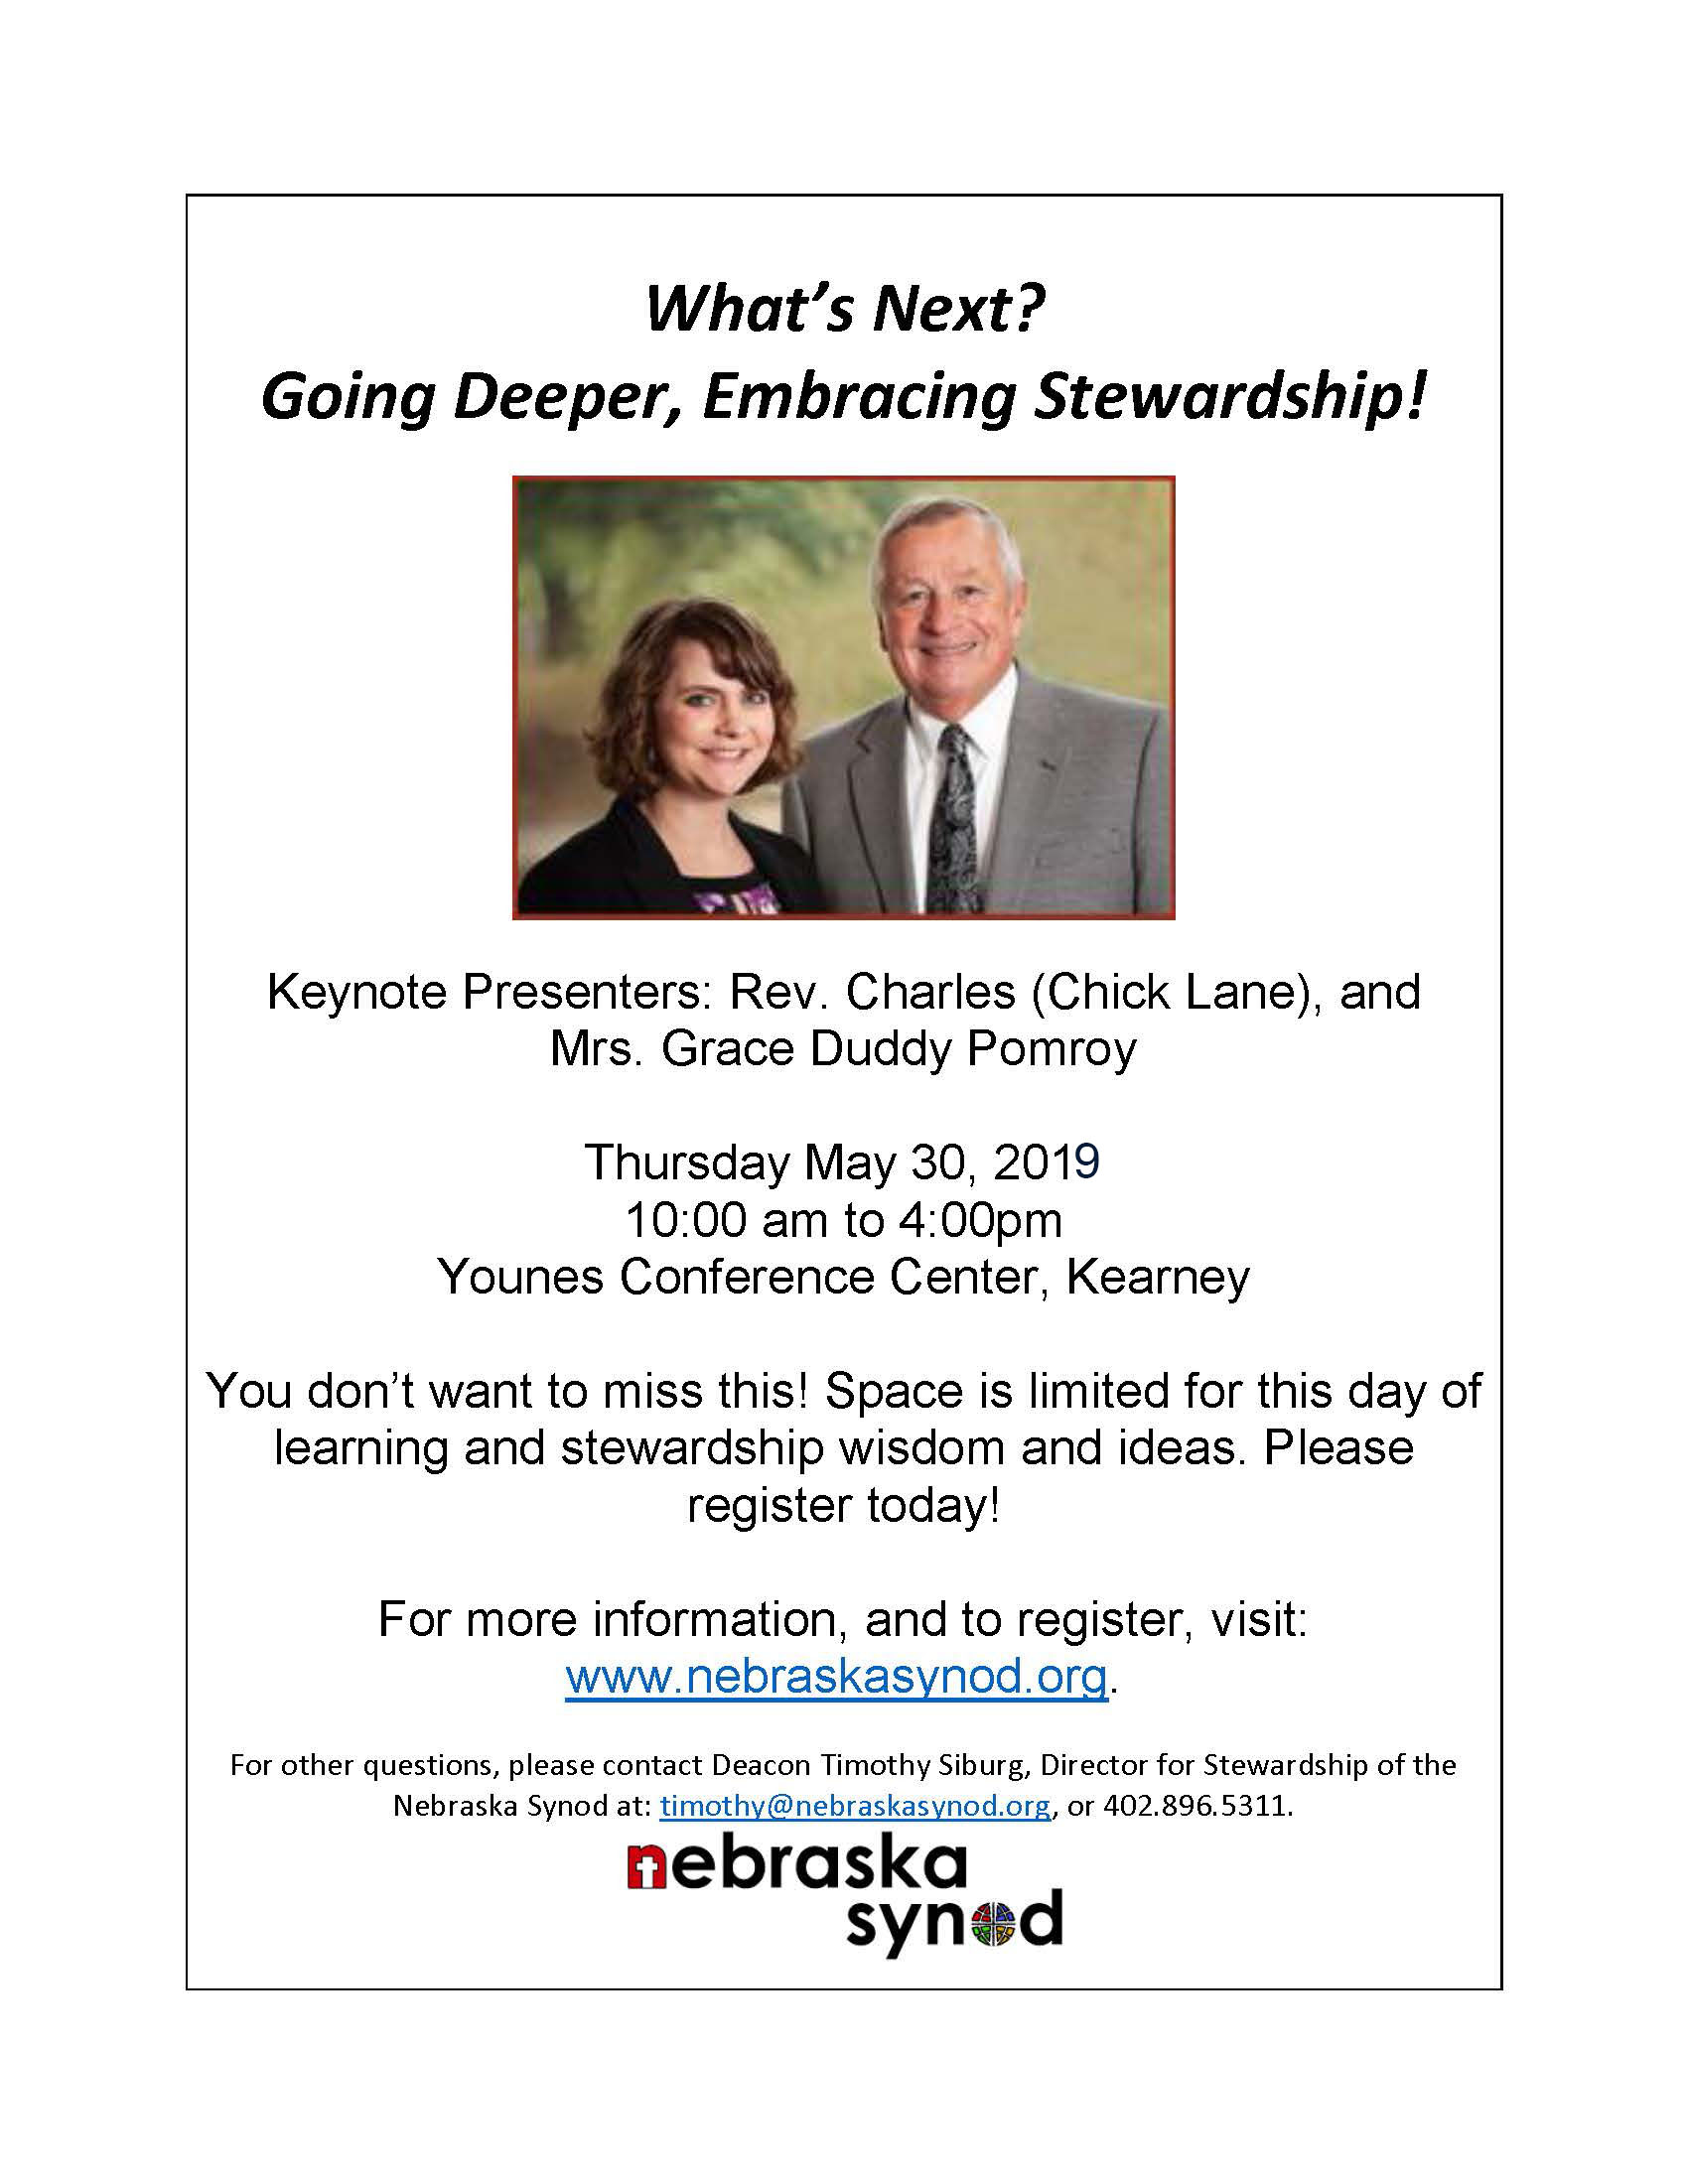 What's Next? Going Deeper- Embracing Stewardship